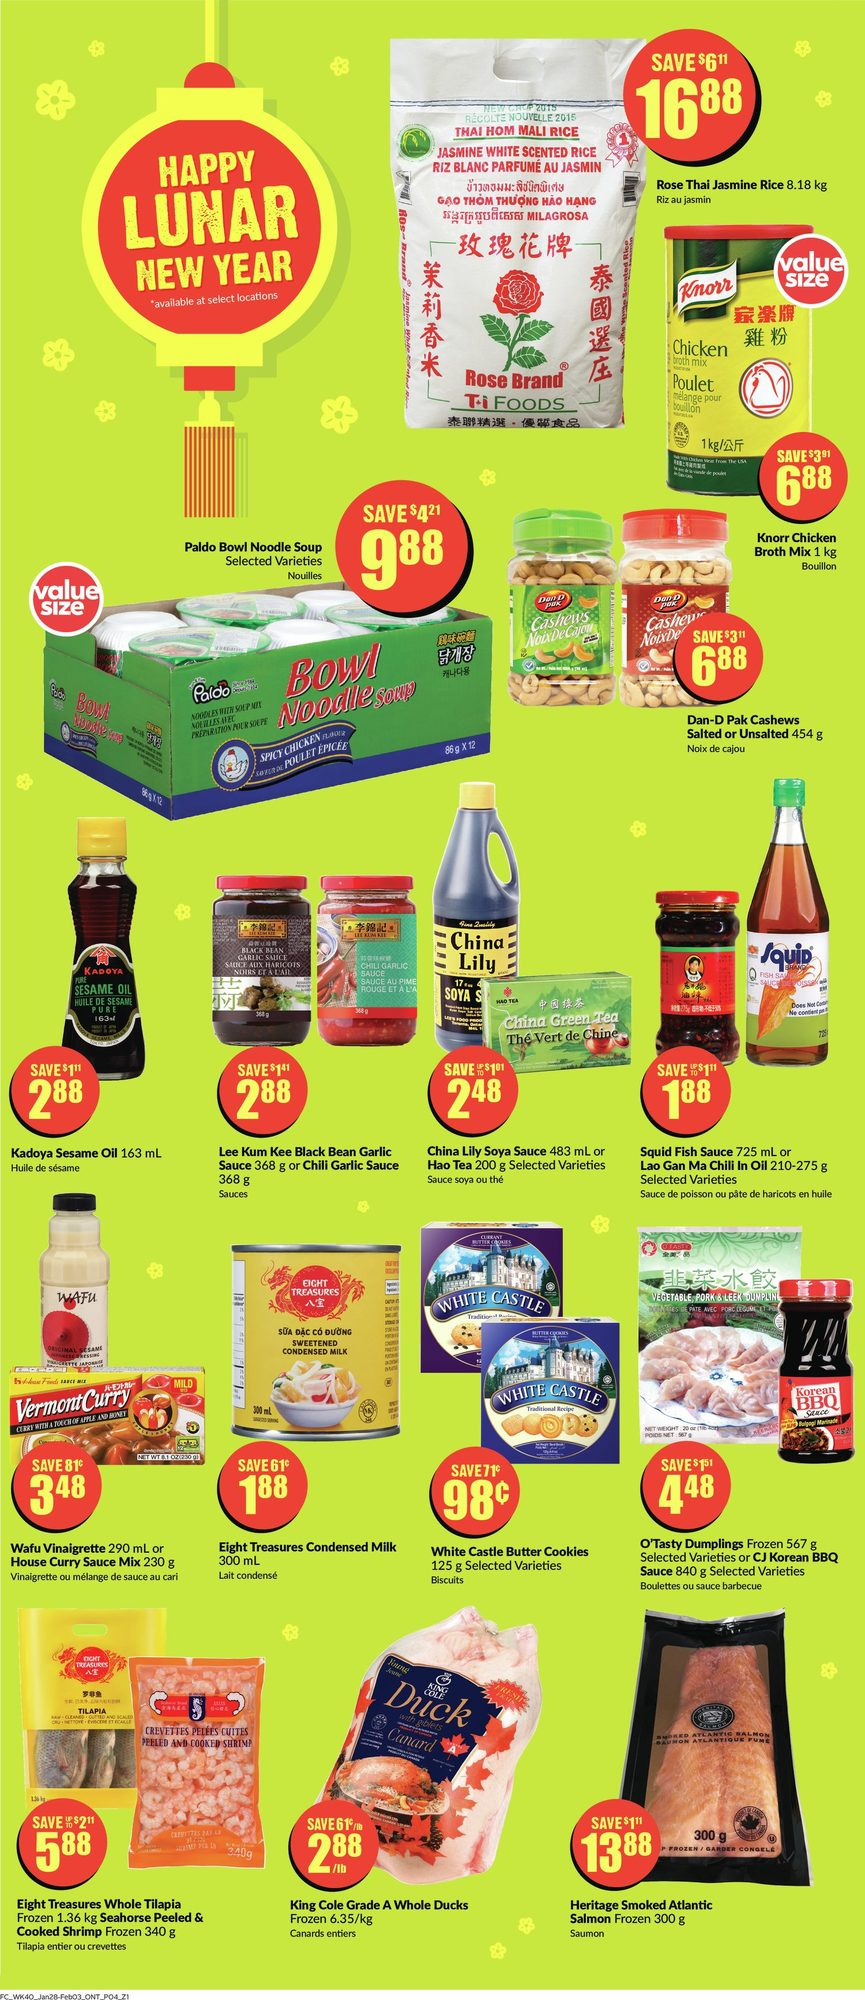 FreshCo - Weekly Flyer Specials - Page 4